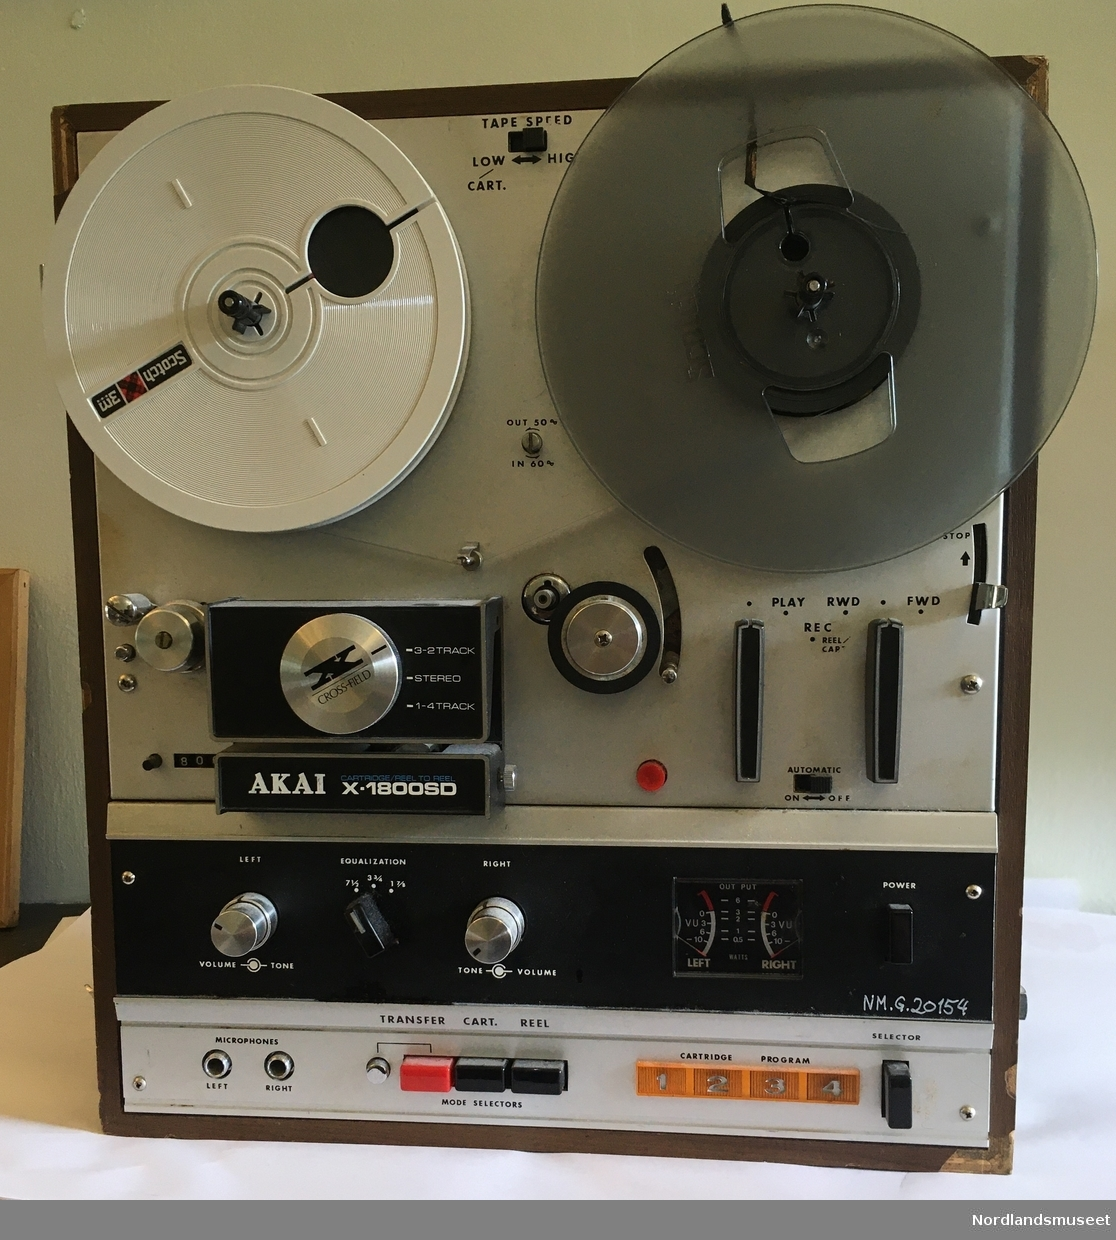 Multi-purpose tape recorder